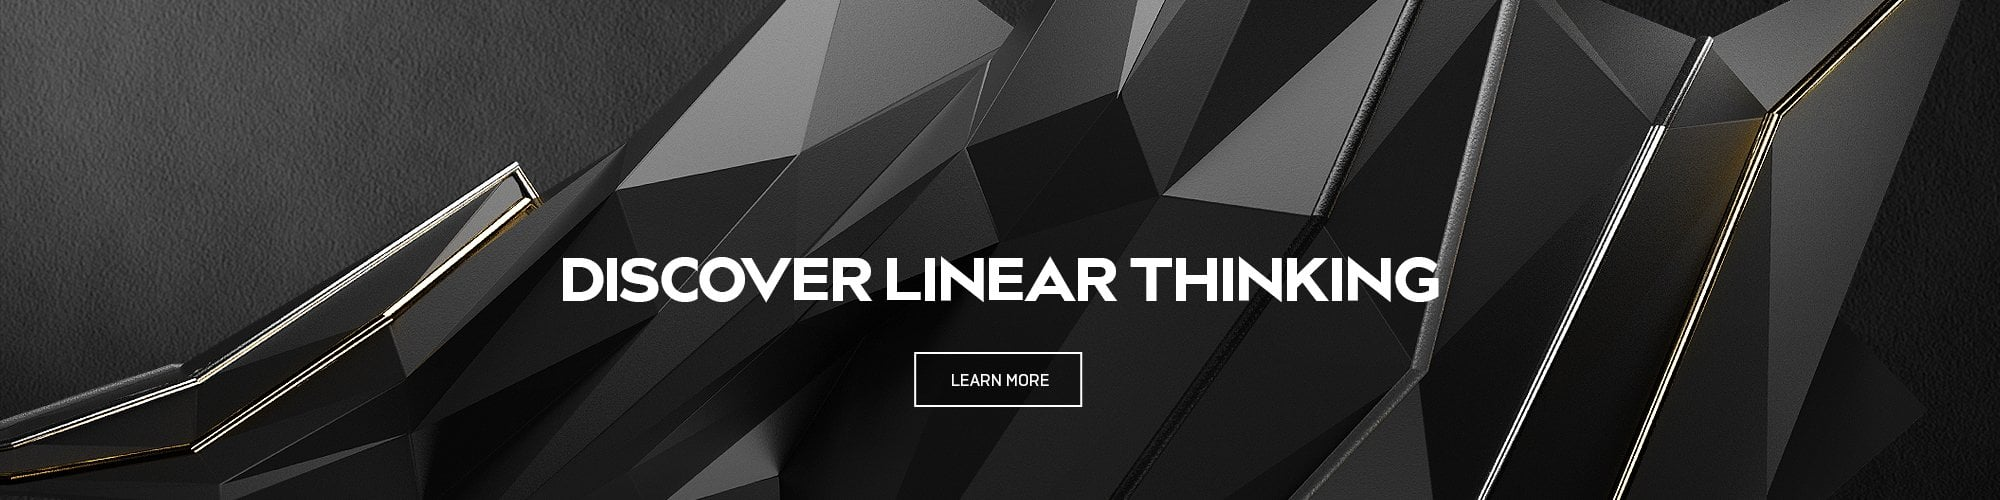 Discover Linear Thinking